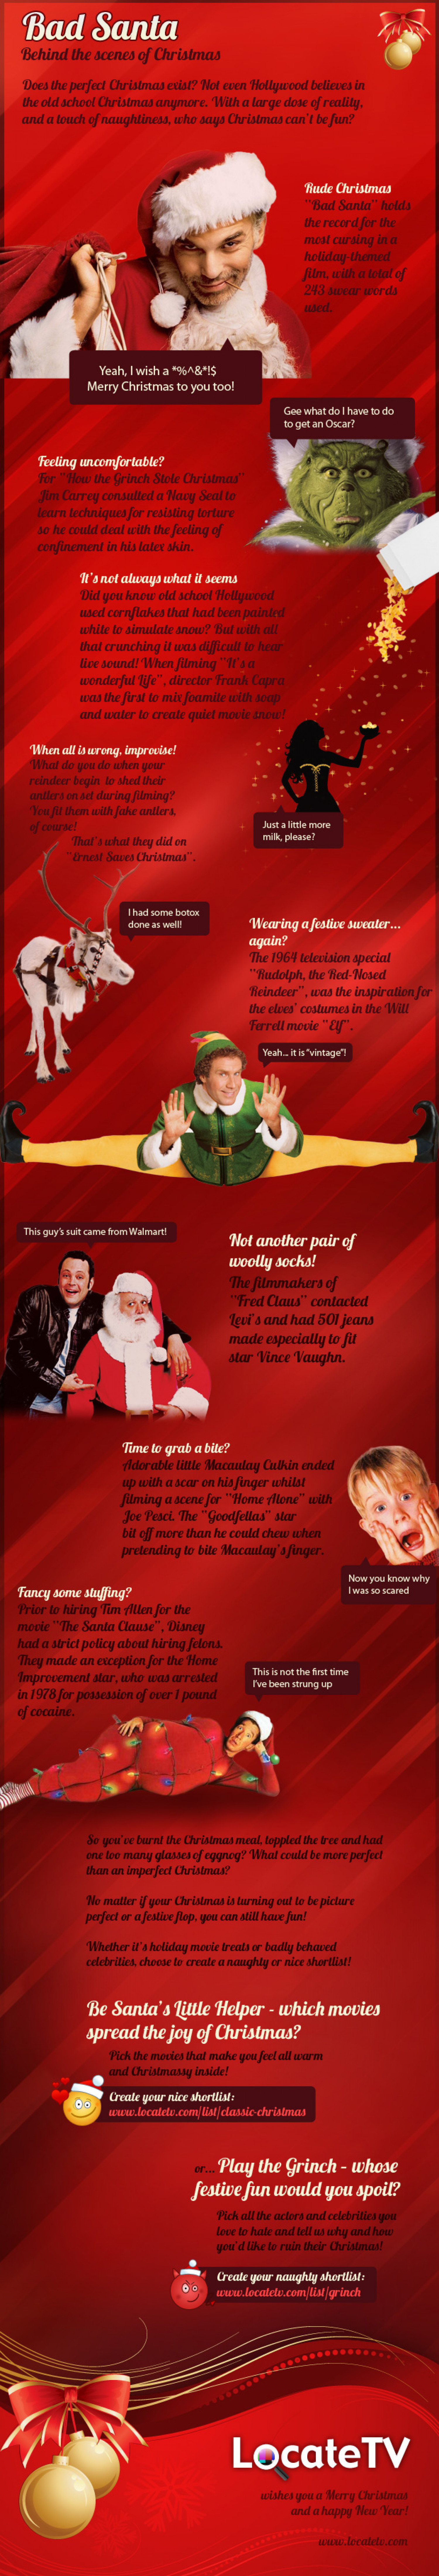 Bad Santa: Behind the Scenes of Christmas Infographic